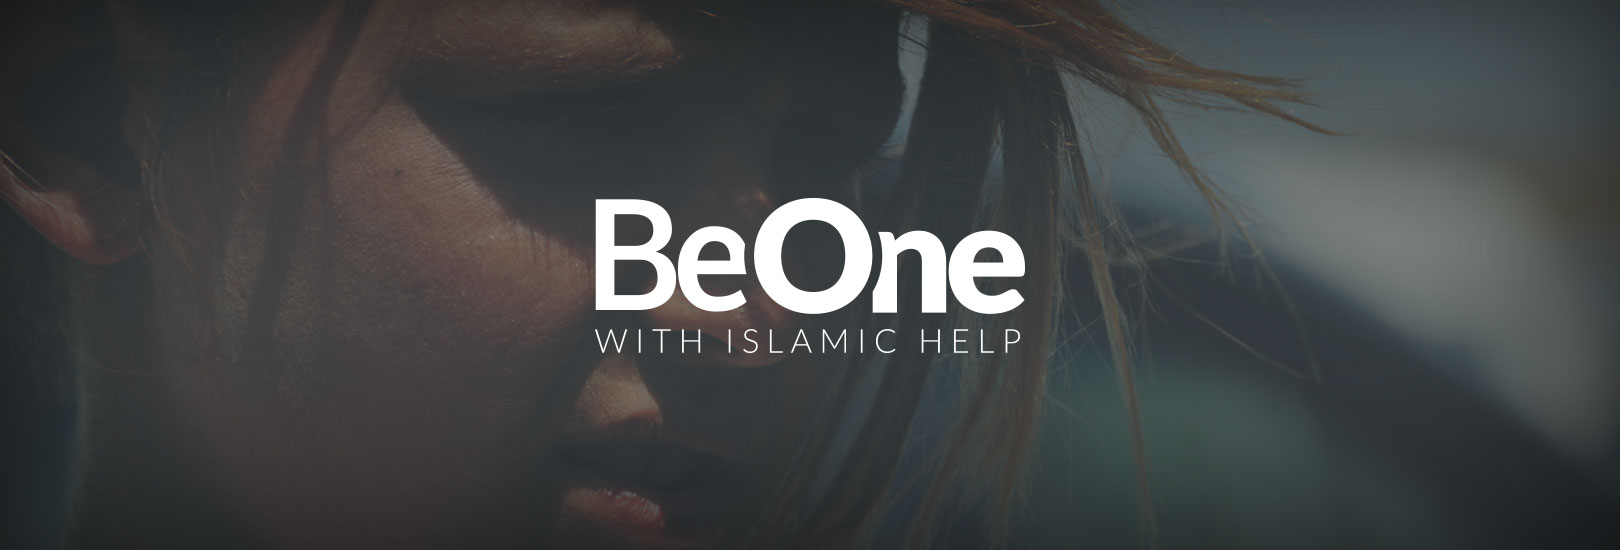 BeOne Campaign banner